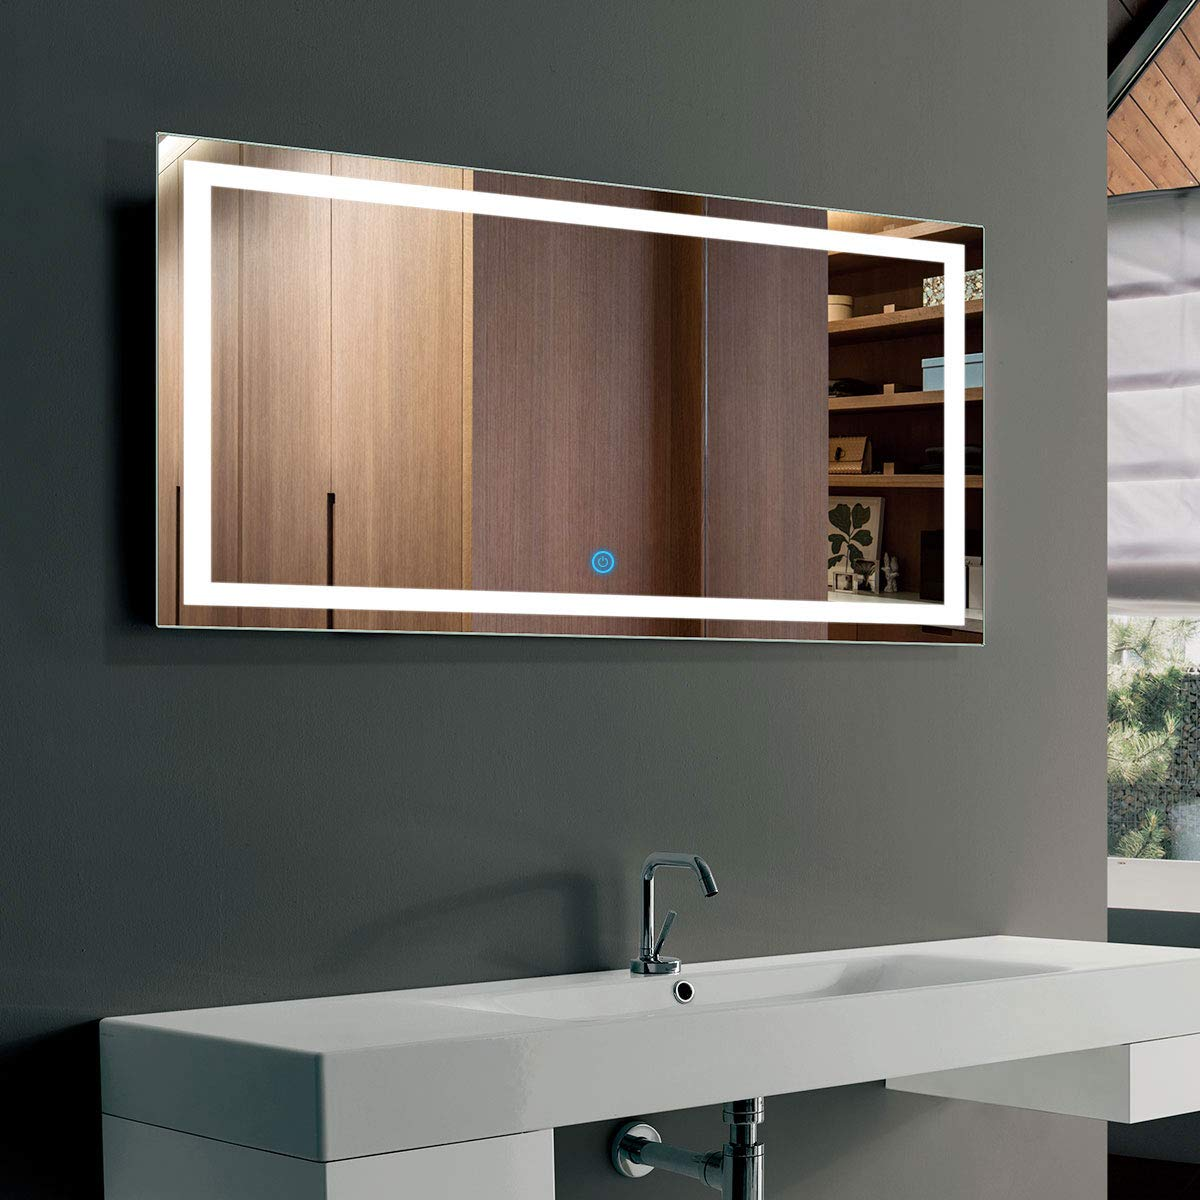 DP Home Horizontal LED Bathroom Silvered Mirror with Touch Button, 40 x 24 In(E-CK010-G)